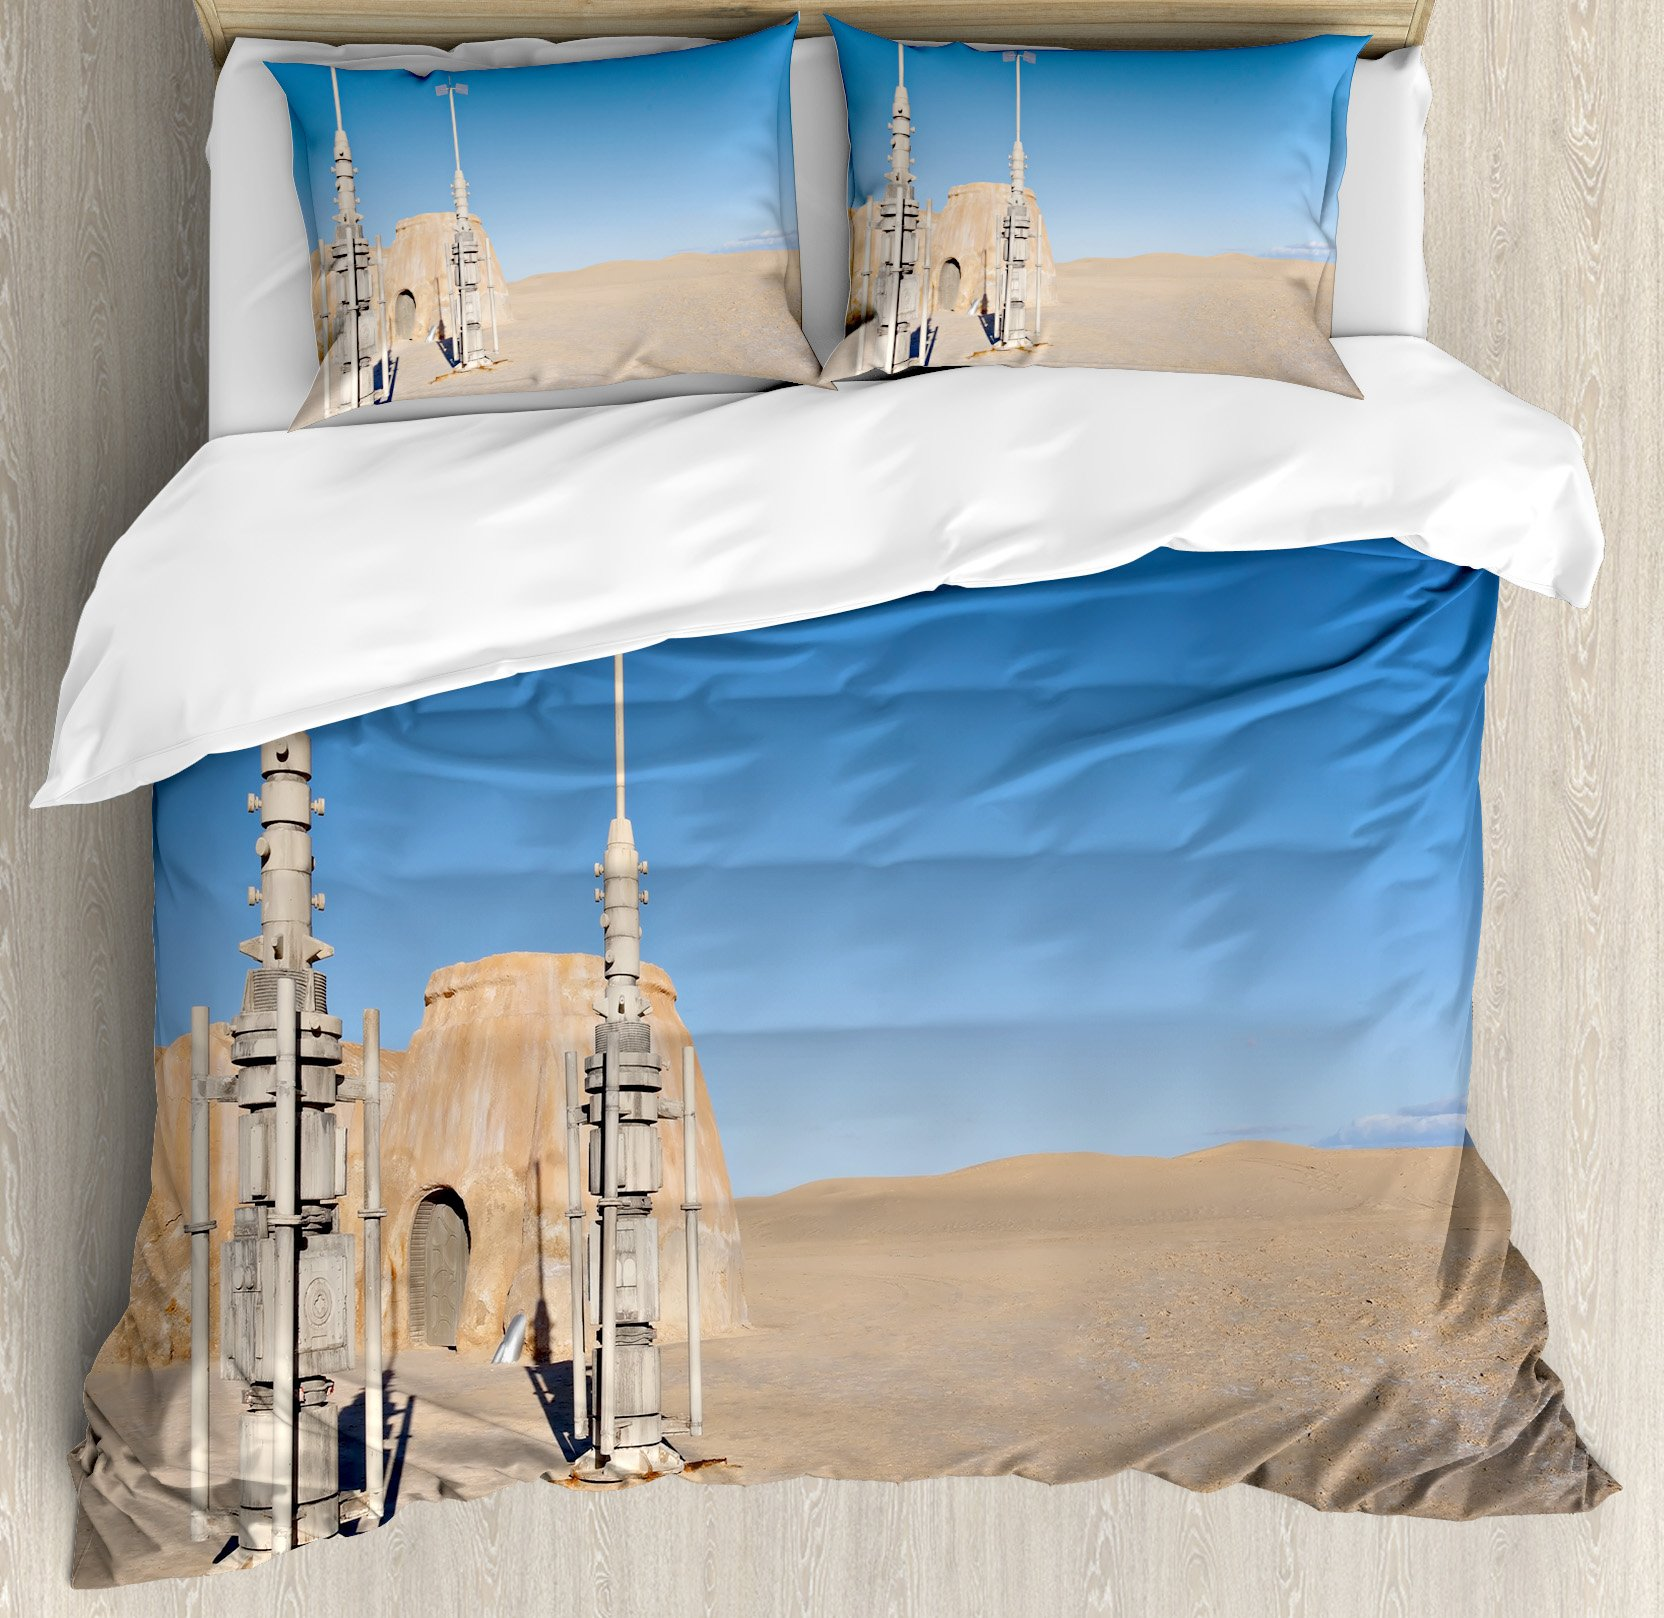 Galaxy Duvet Cover Set by Ambesonne, Illustration of Town of Famous Movie Set on the Planet Fantasy Space Wars Theme, 3 Piece Bedding Set with Pillow Shams, Queen / Full, Brown Blue